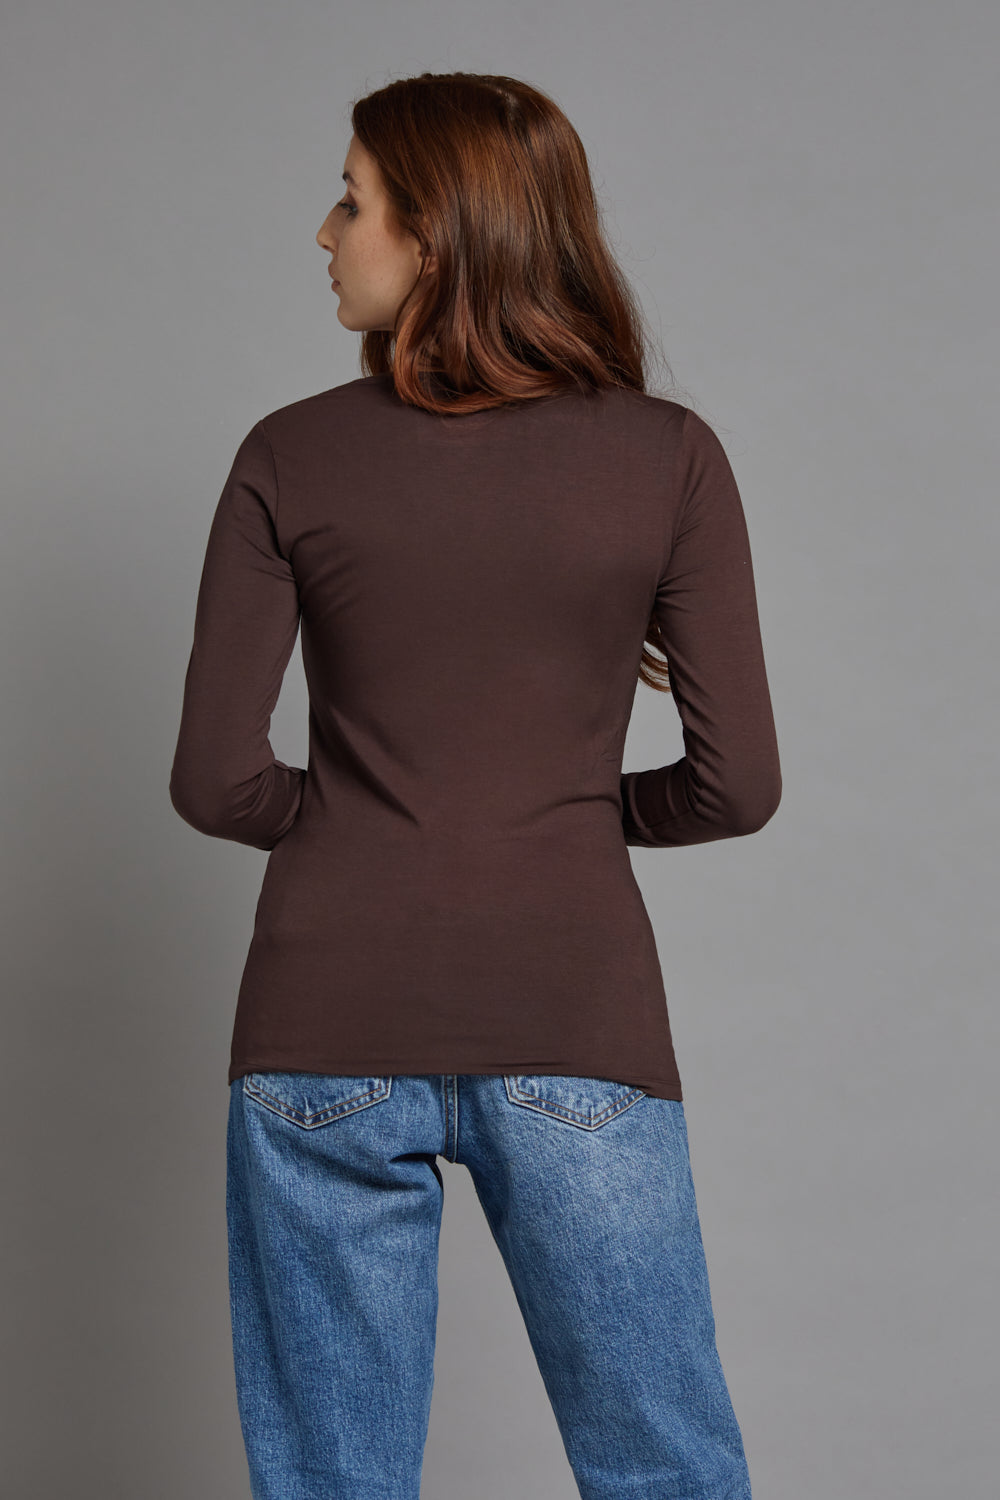 Majestic Long Sleeve Viscose V-Neck Tee in Coffee